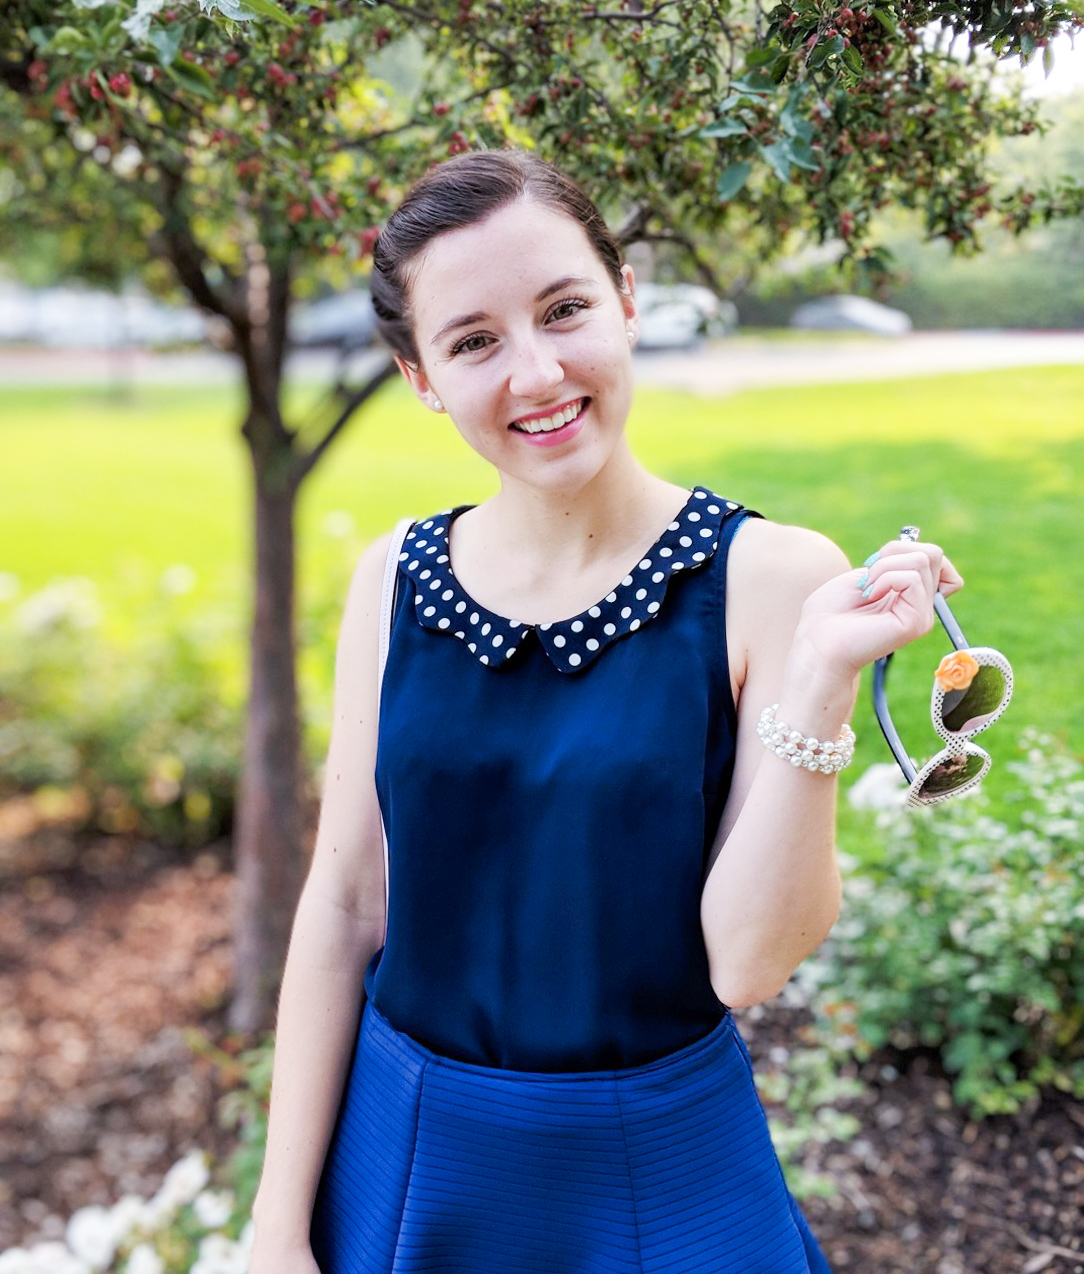 polka dot collar, navy outfit, Easter outfit